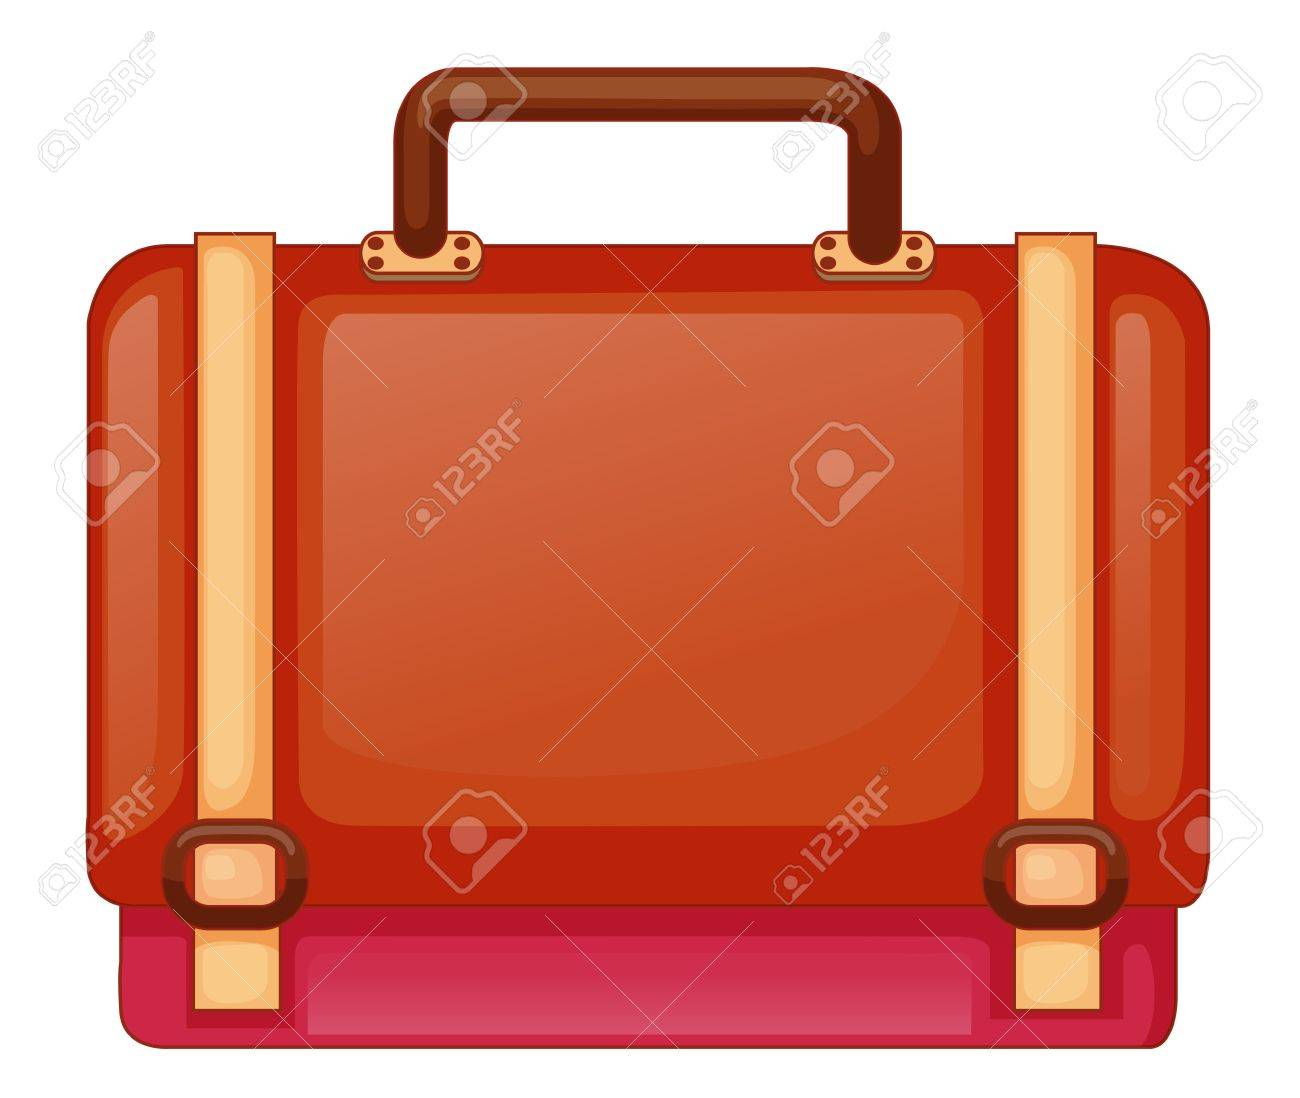 Illustration of a red bag on a white background Stock Vector - 18980965